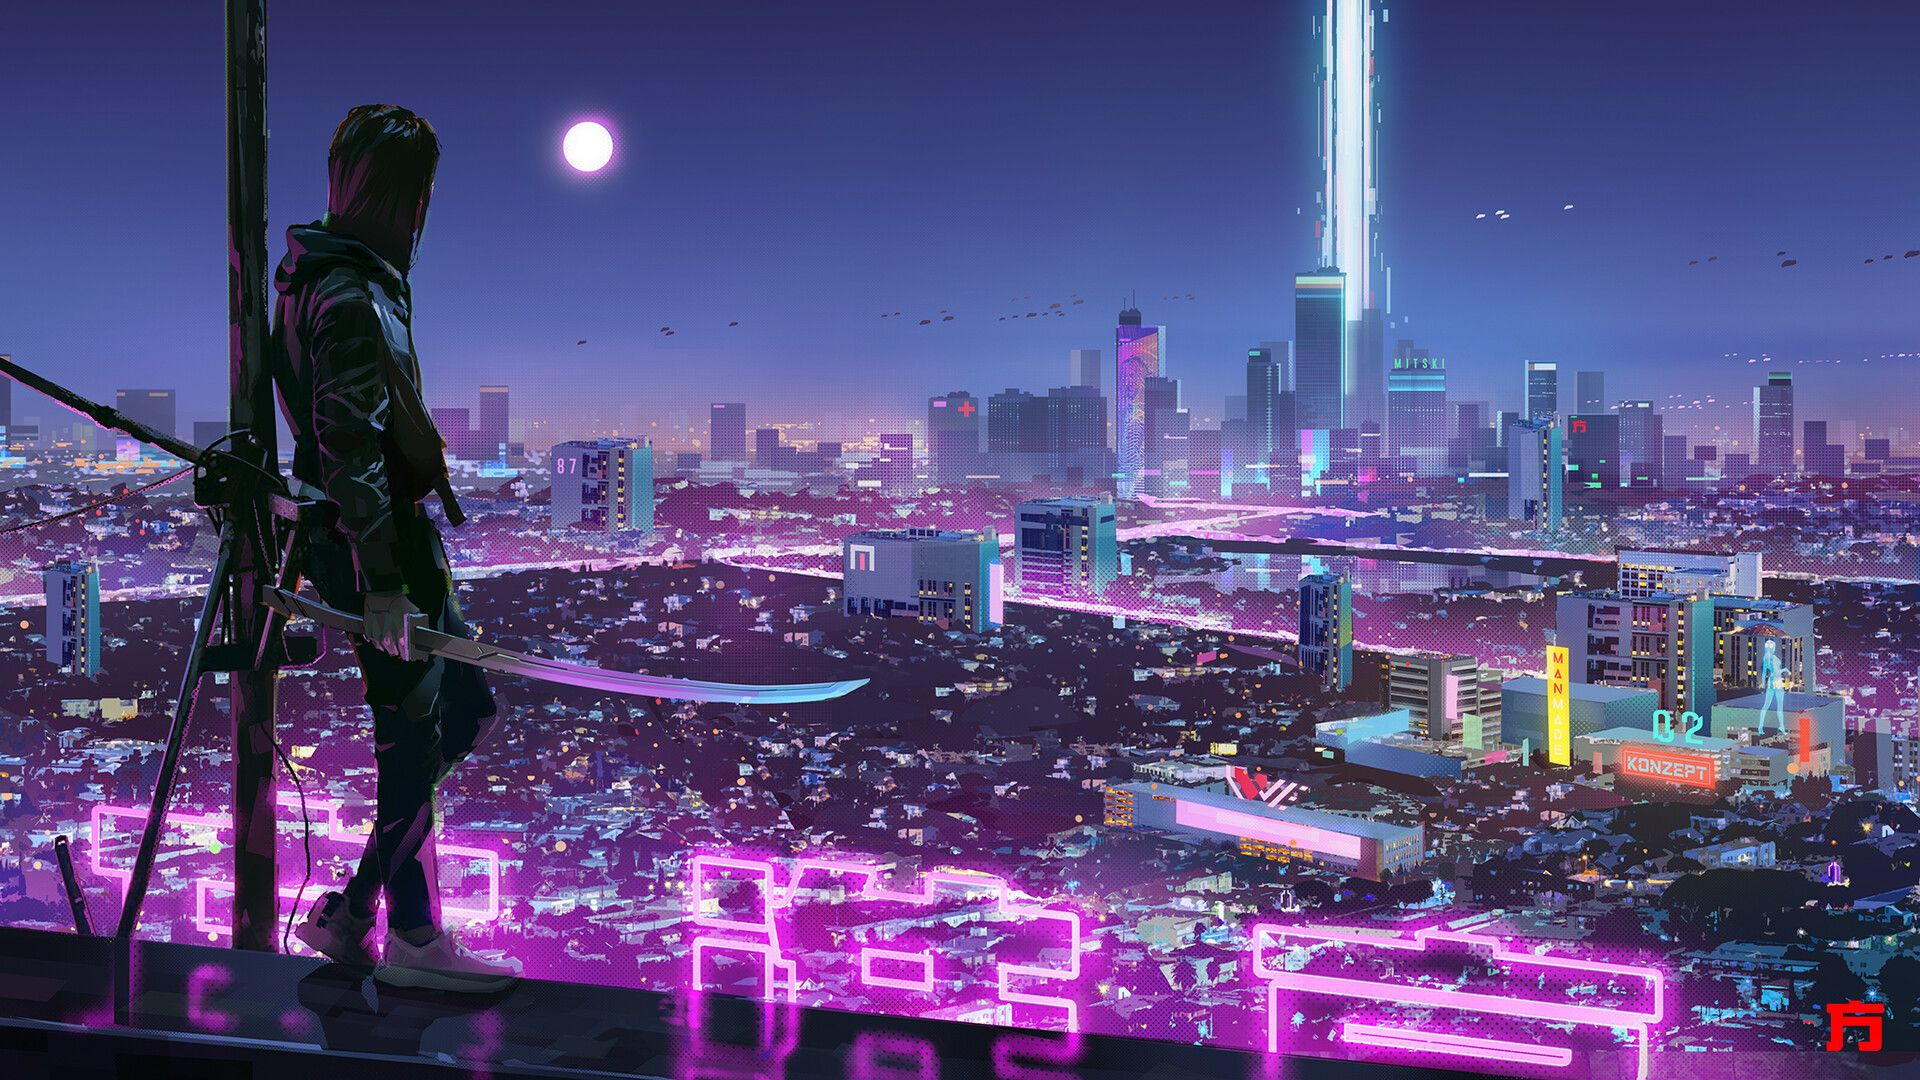 Aesthetic Night City Pc Hd Wallpapers Wallpaper Cave Treb loses supreme court appeal, here's. aesthetic night city pc hd wallpapers